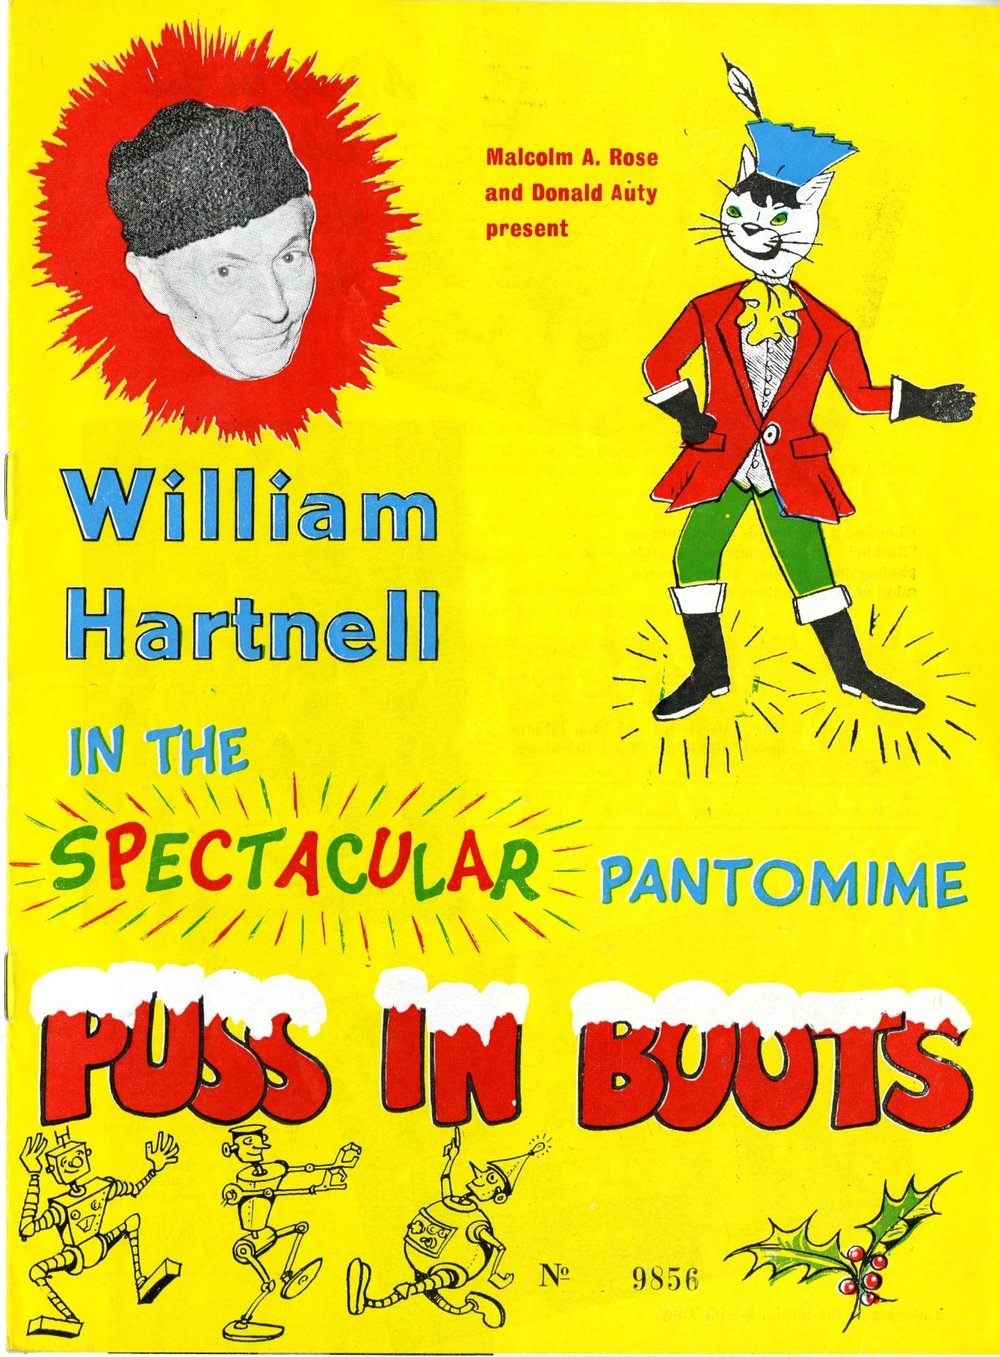 Puss in Boots starring William Hartnell programme cover